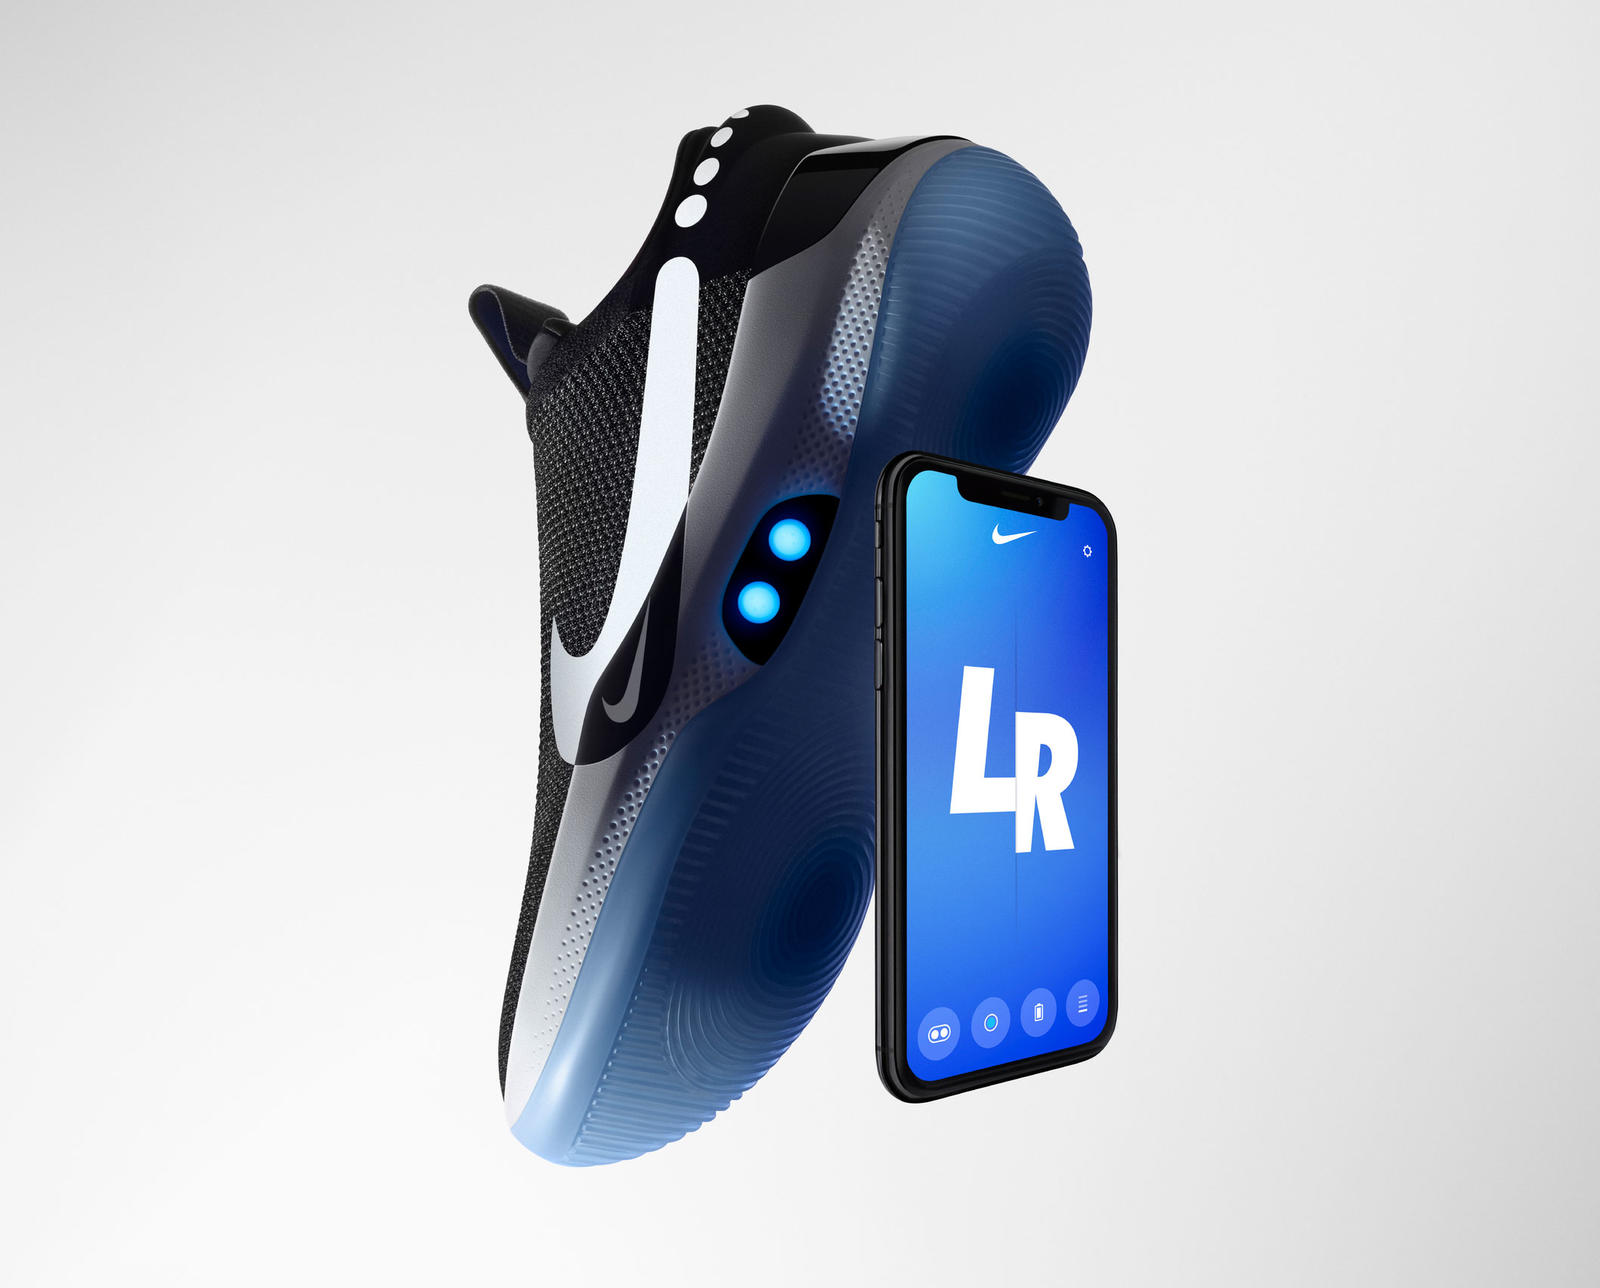 The idea that you can imagine the future and Nike can create it a38ab9134